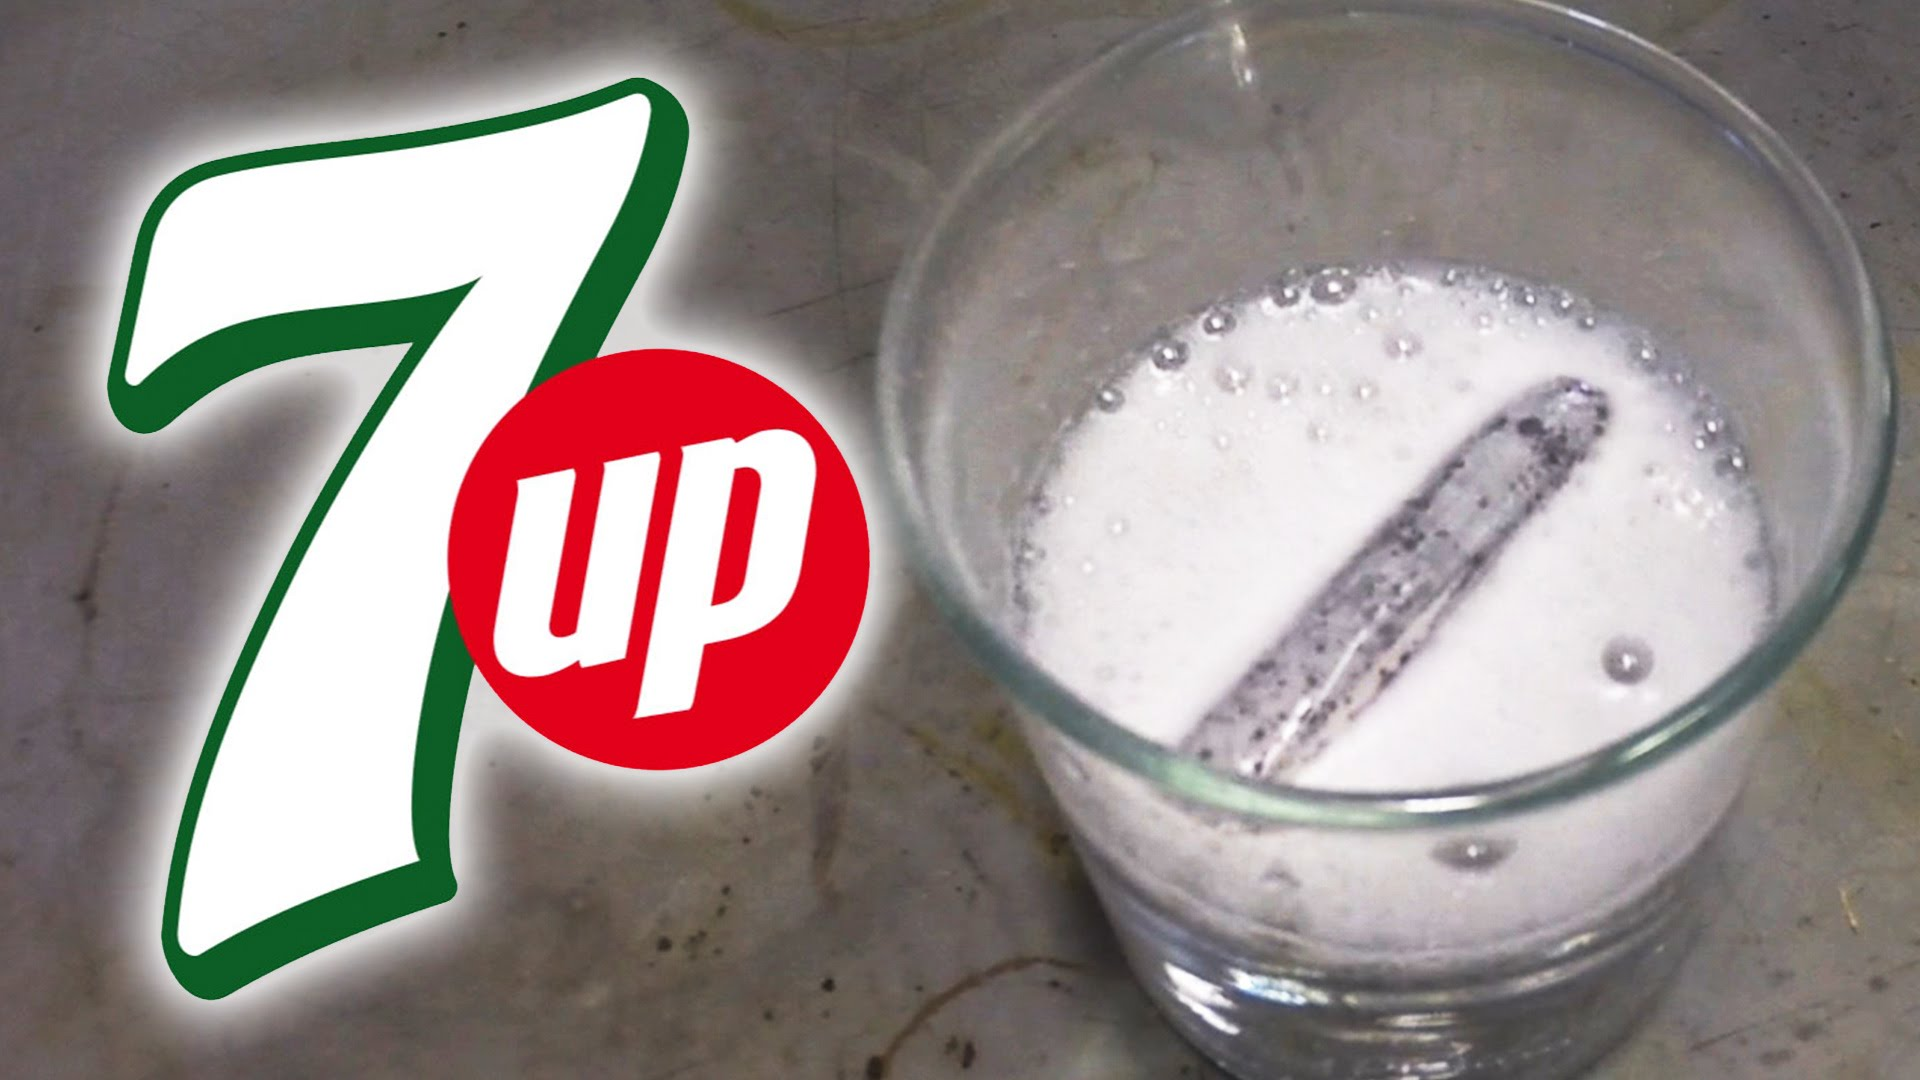 7up Backgrounds, Compatible - PC, Mobile, Gadgets| 1920x1080 px